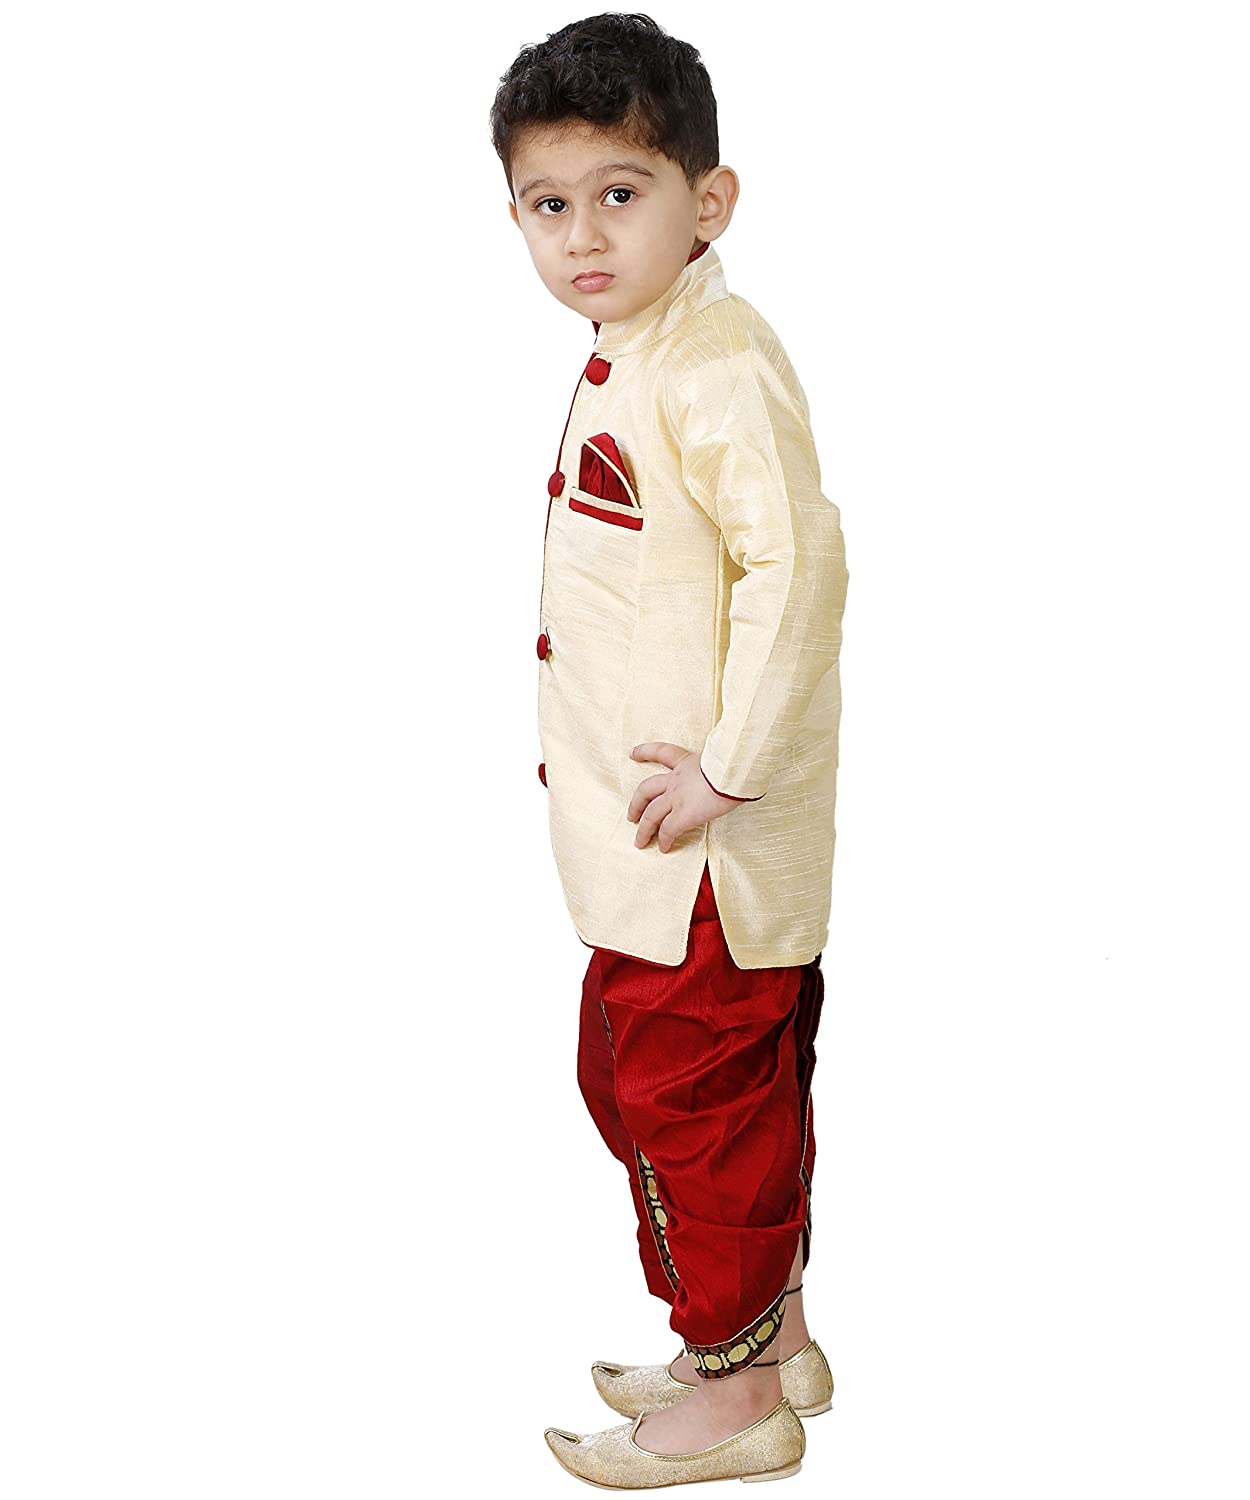 283ee840b6 Suits For Kid Boy In India